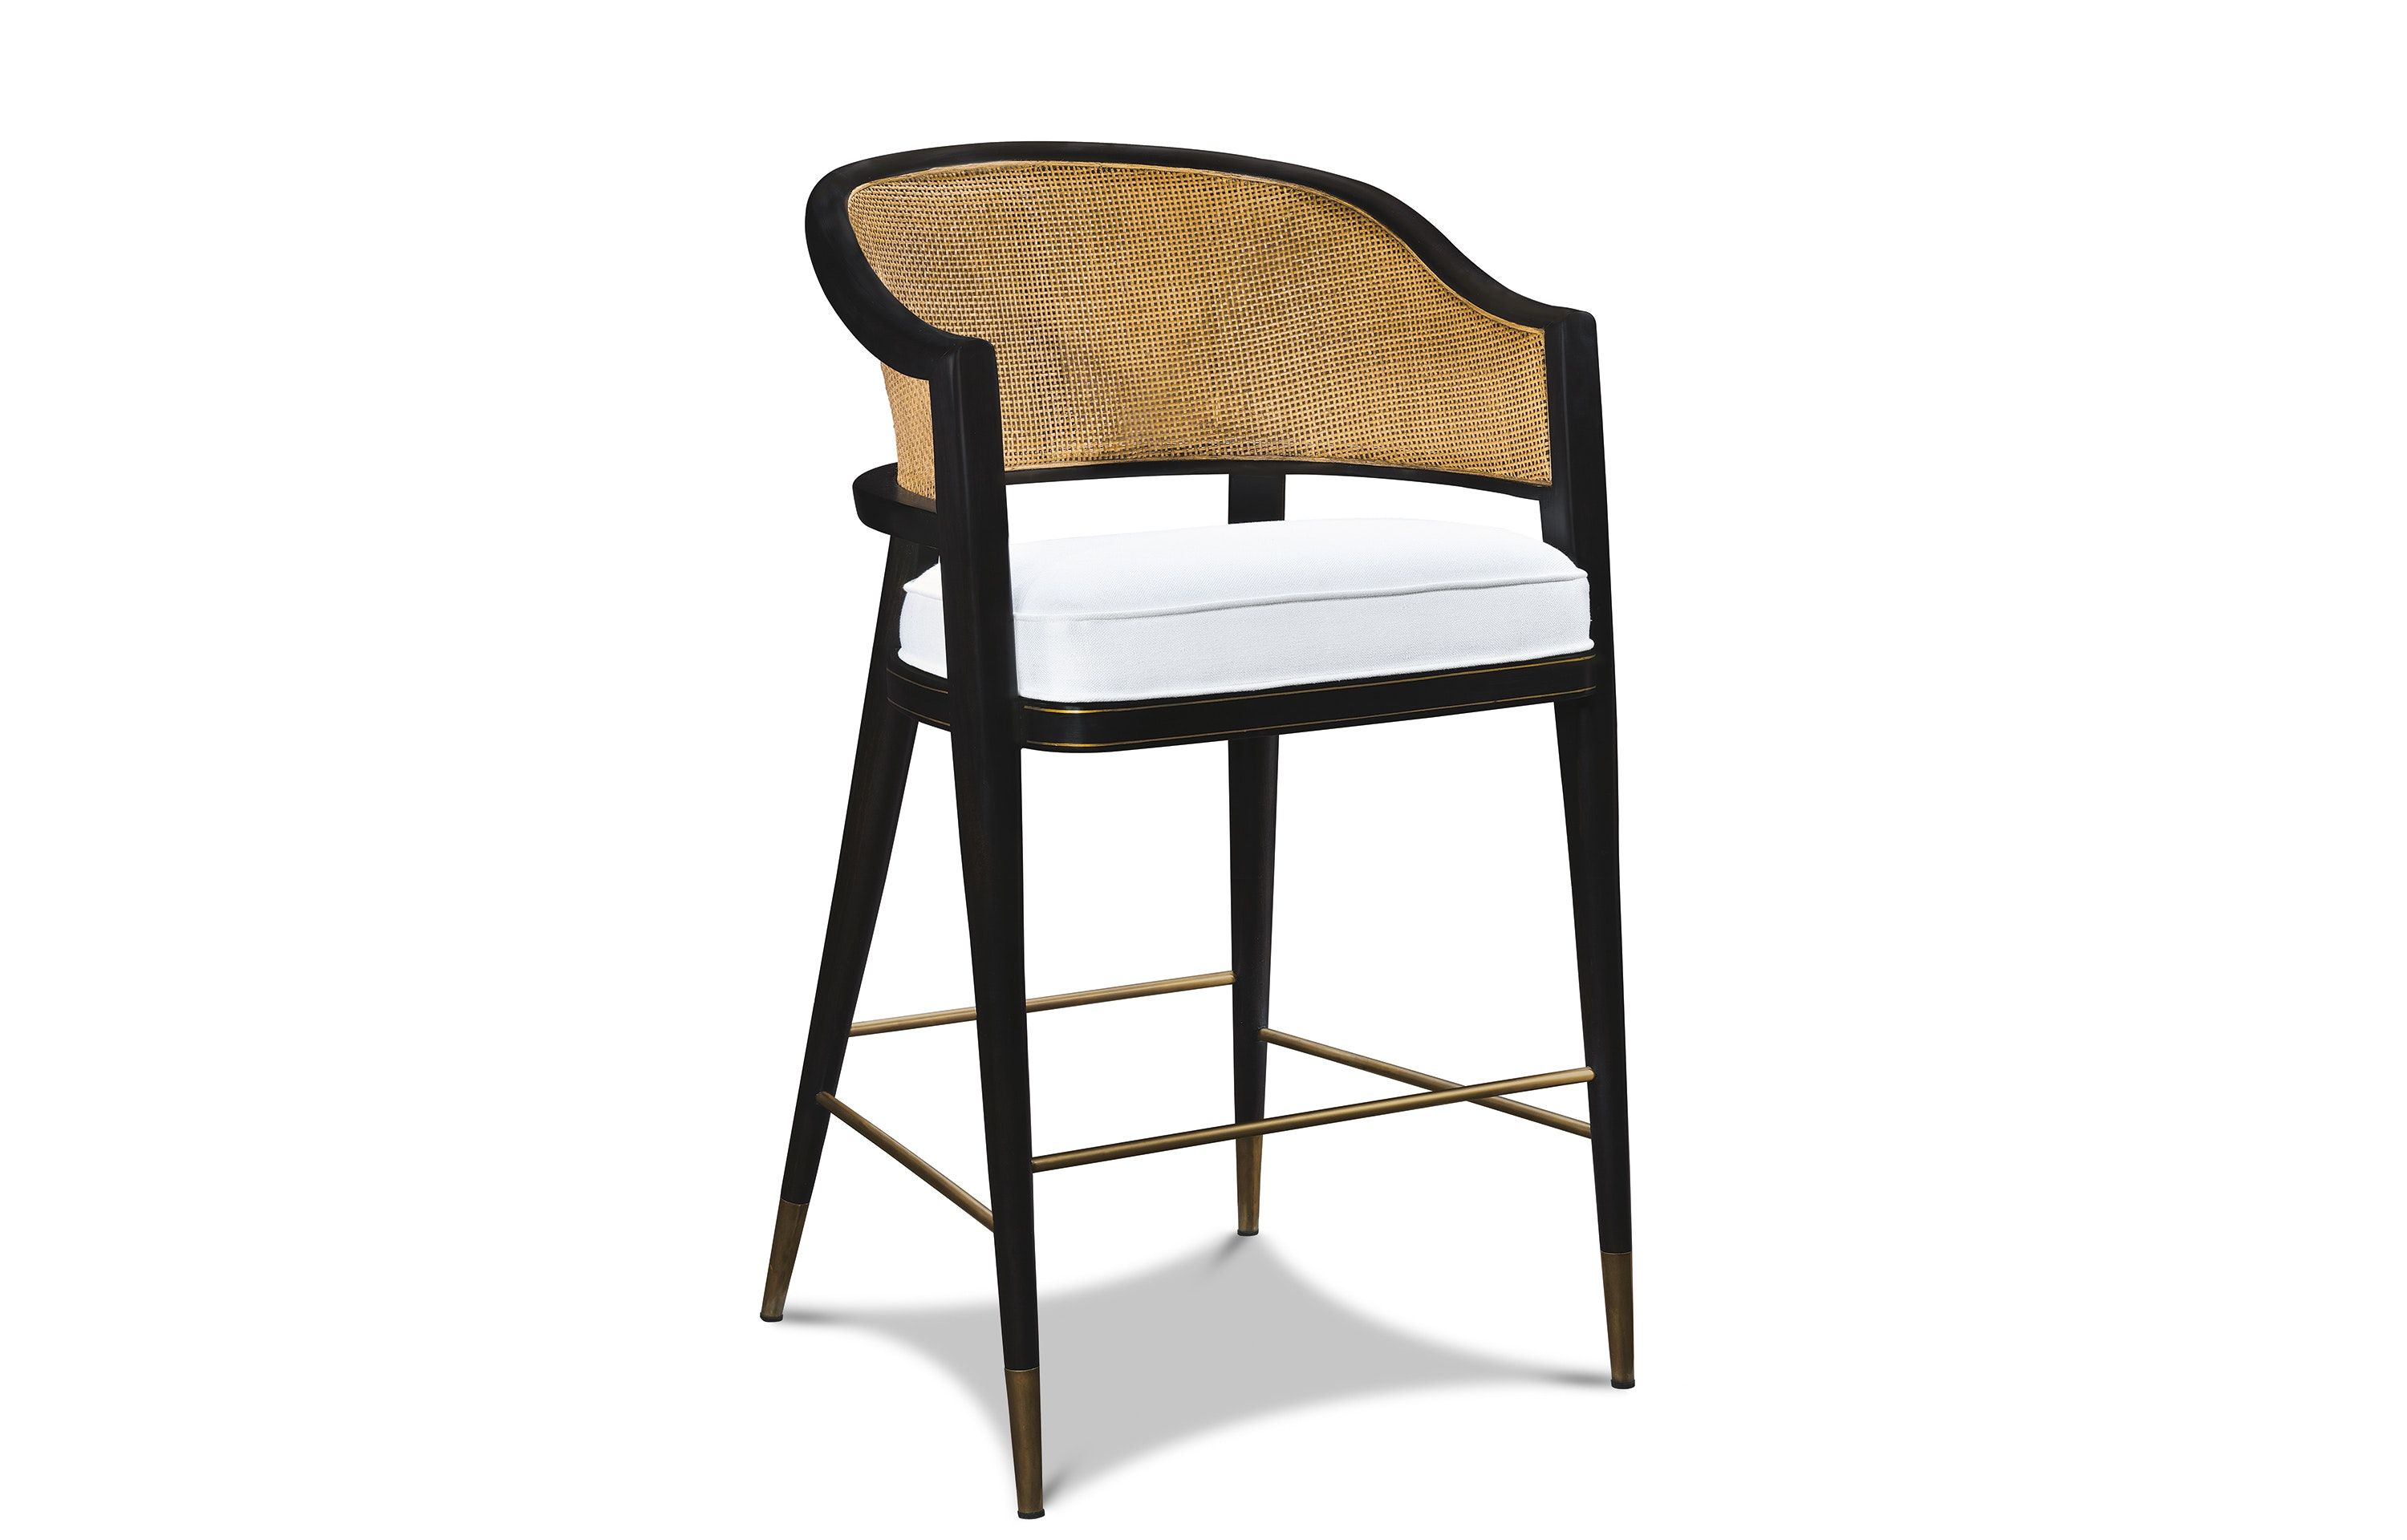 Pleasing Buy Grasse Ii Bar Stool Counter Height By Alfonso Marina Alphanode Cool Chair Designs And Ideas Alphanodeonline